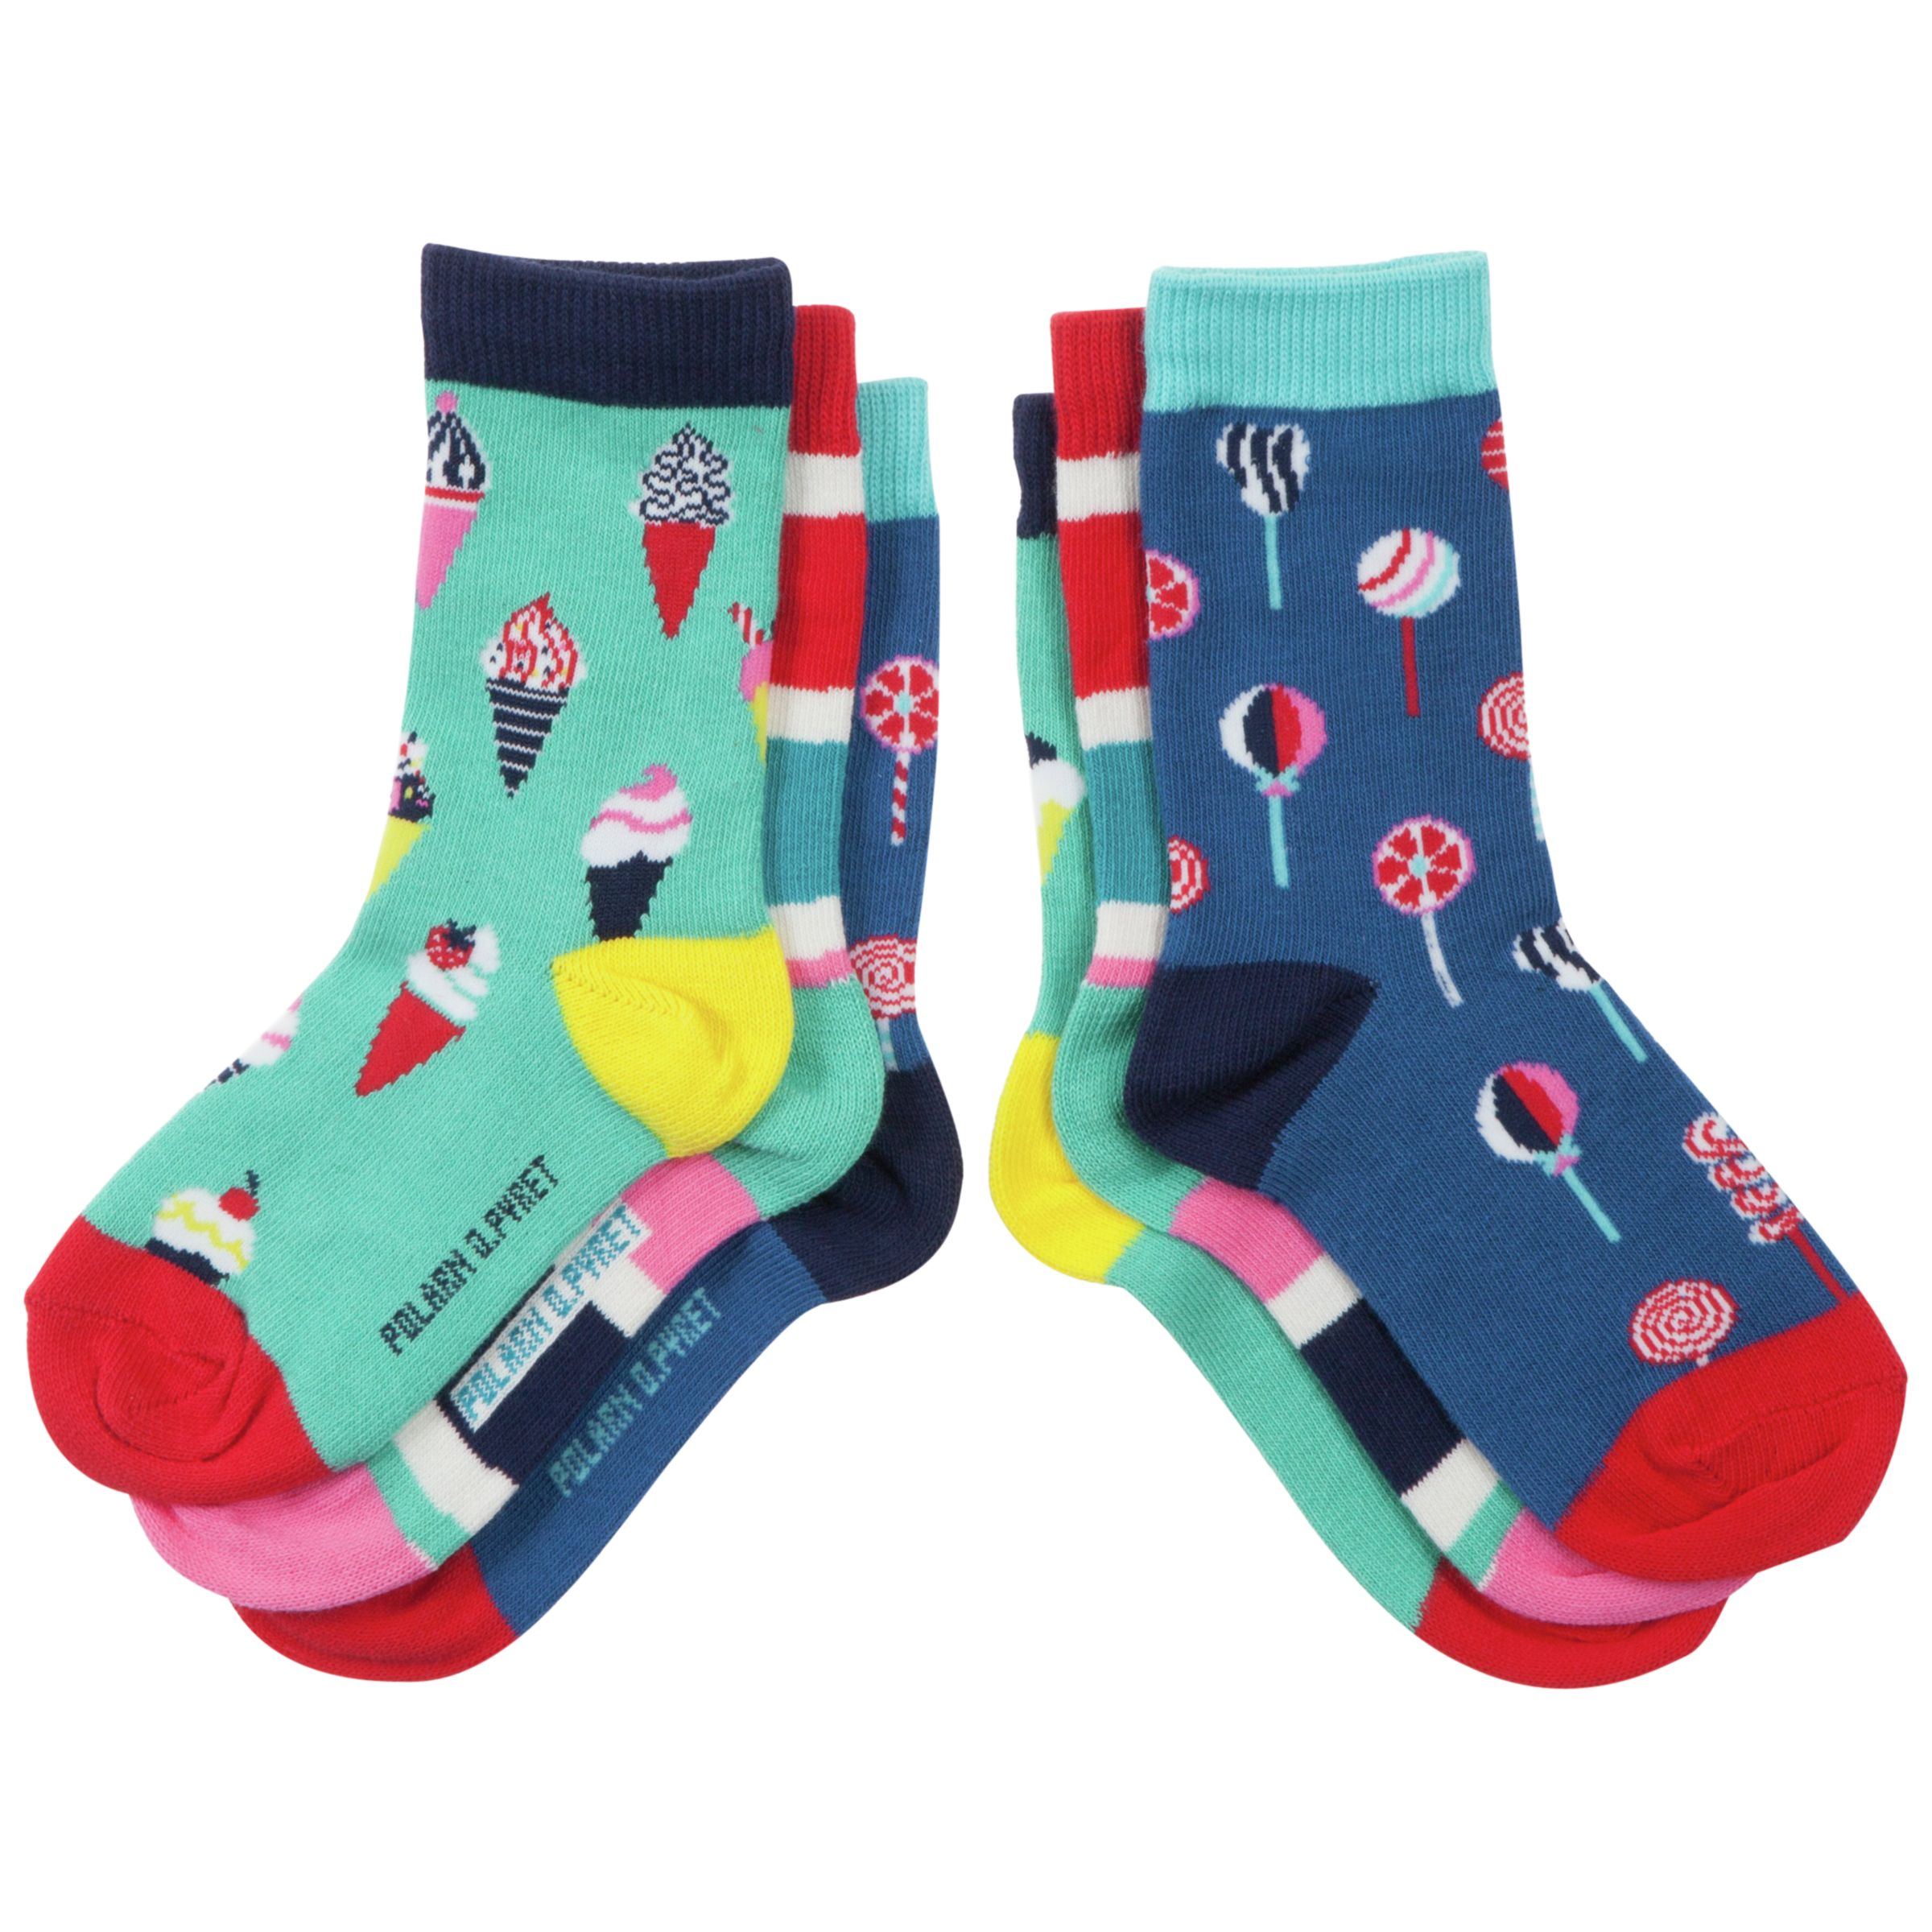 Polarn O. Pyret Candy Print Socks, Pack of 3, Multi